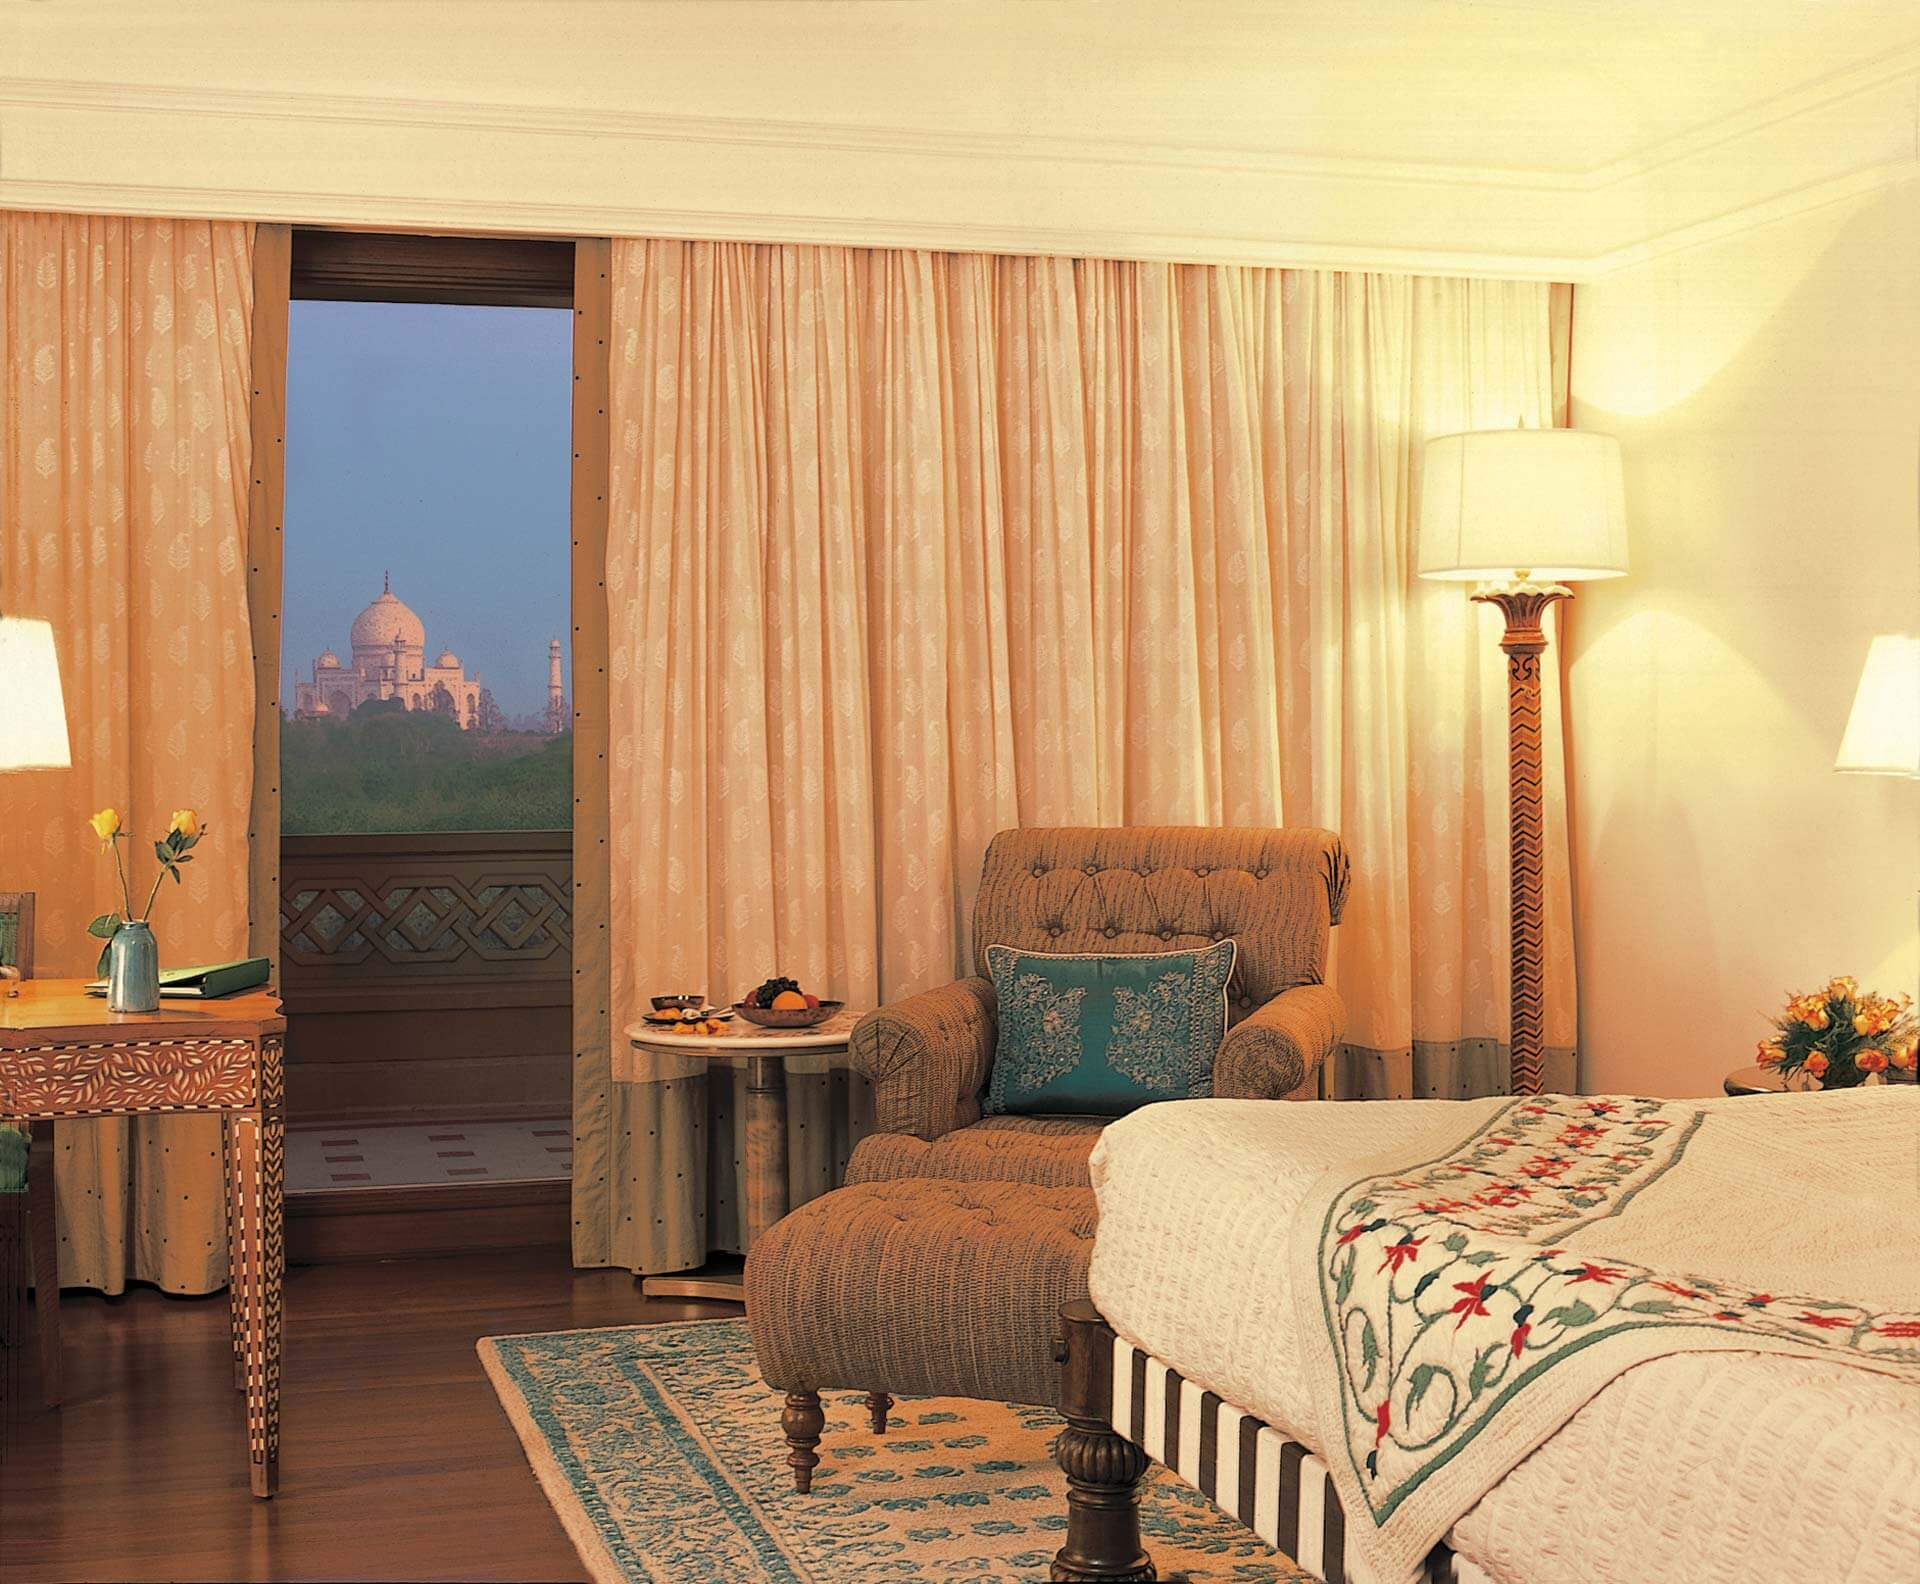 The Oberoi Amarvilas Zimmer mit Blick